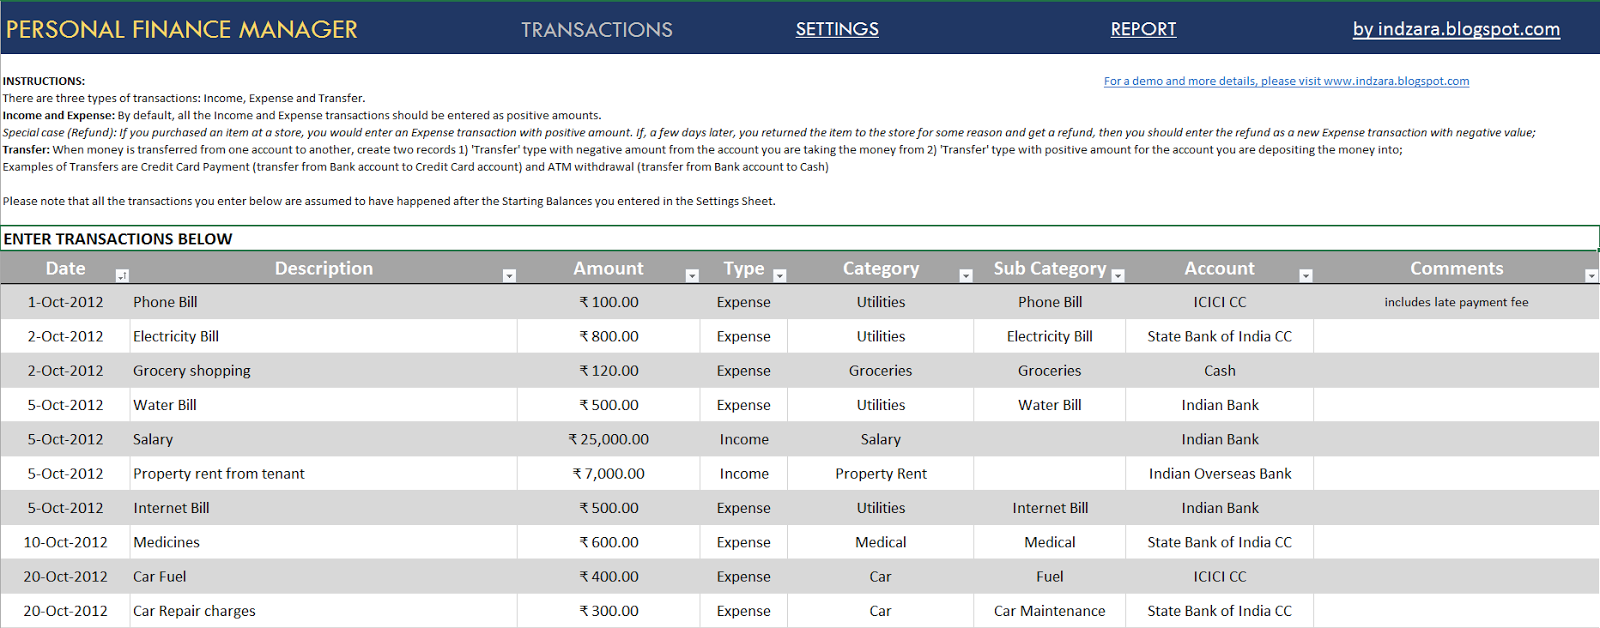 Personal Finance Manager Excel Template - Sample Transactions